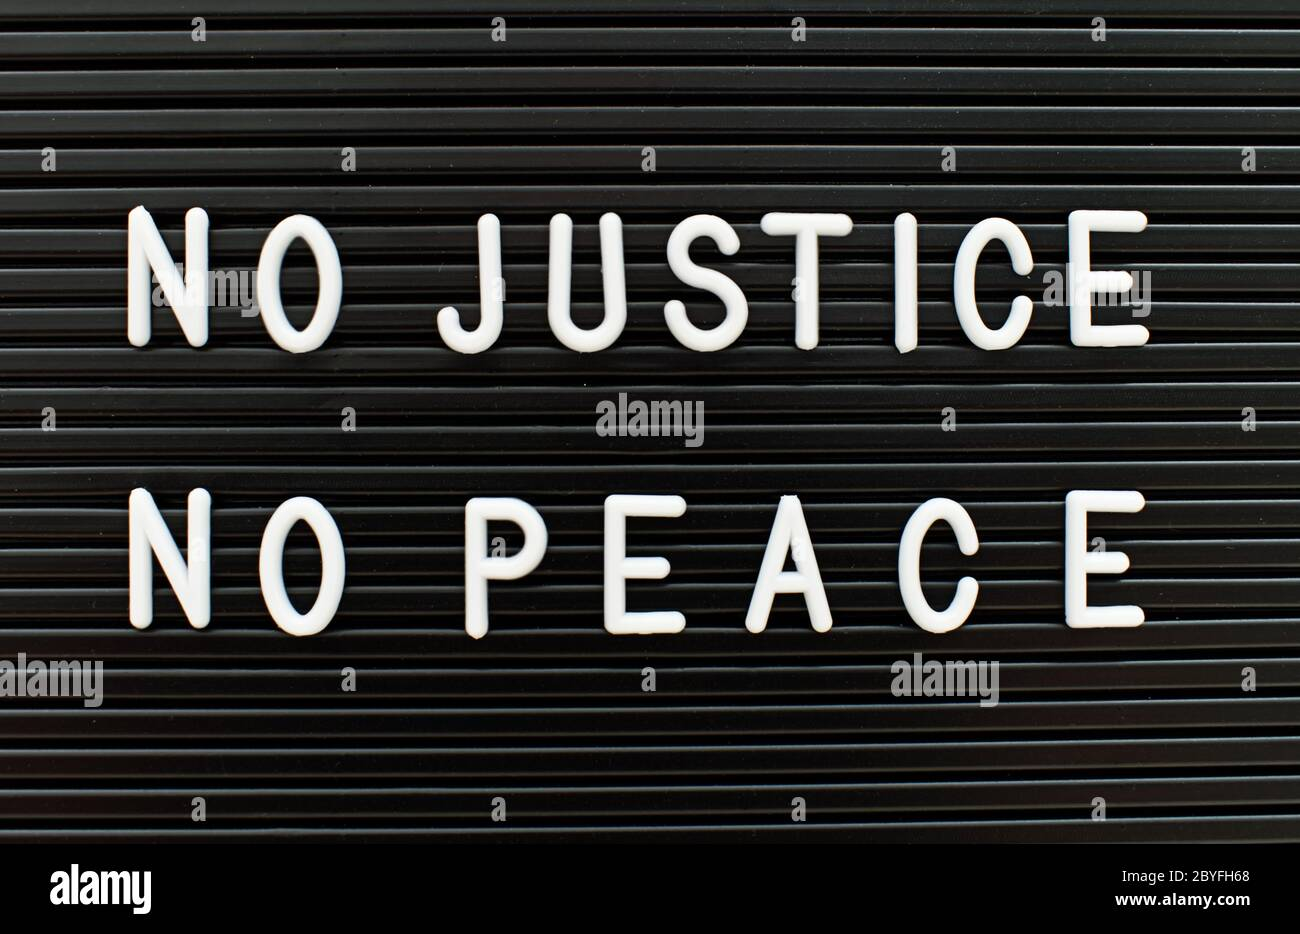 No justice no peace written on letter board. Police brutality concept. Stock Photo